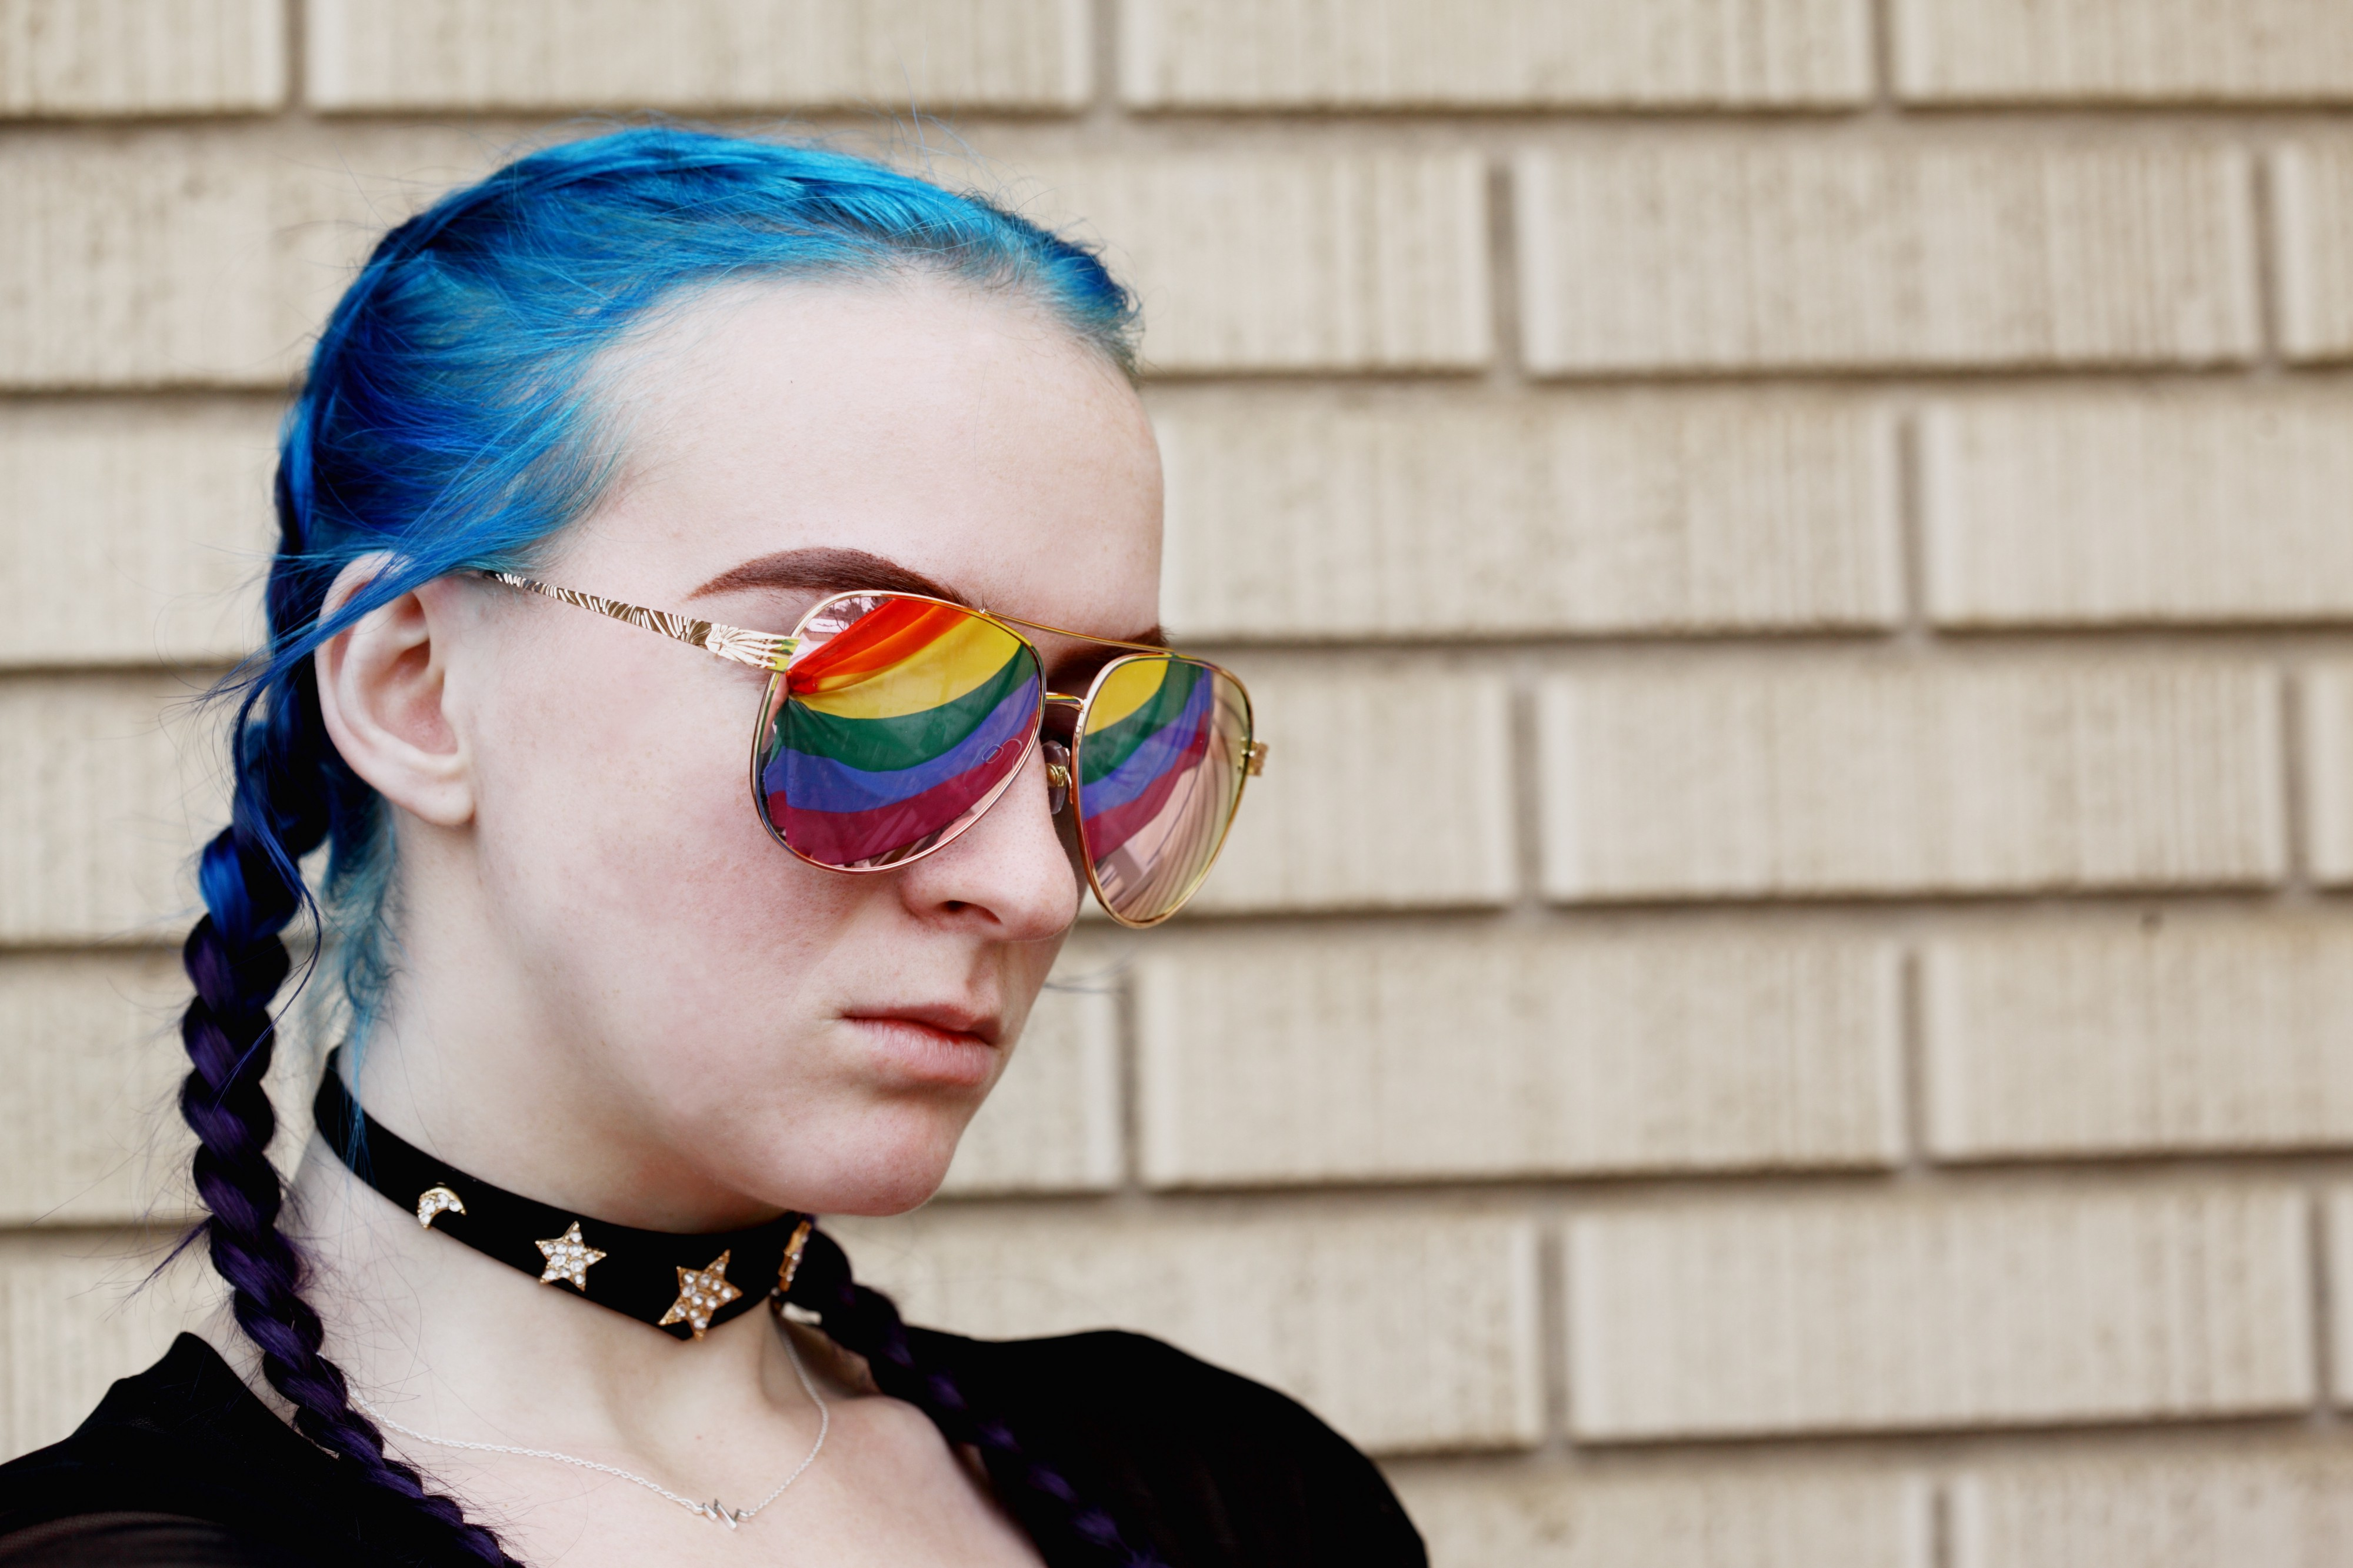 Someone with rainbow flags in their sunglasses. Maybe they're looking for the bi flag, which is not on Unsplash.